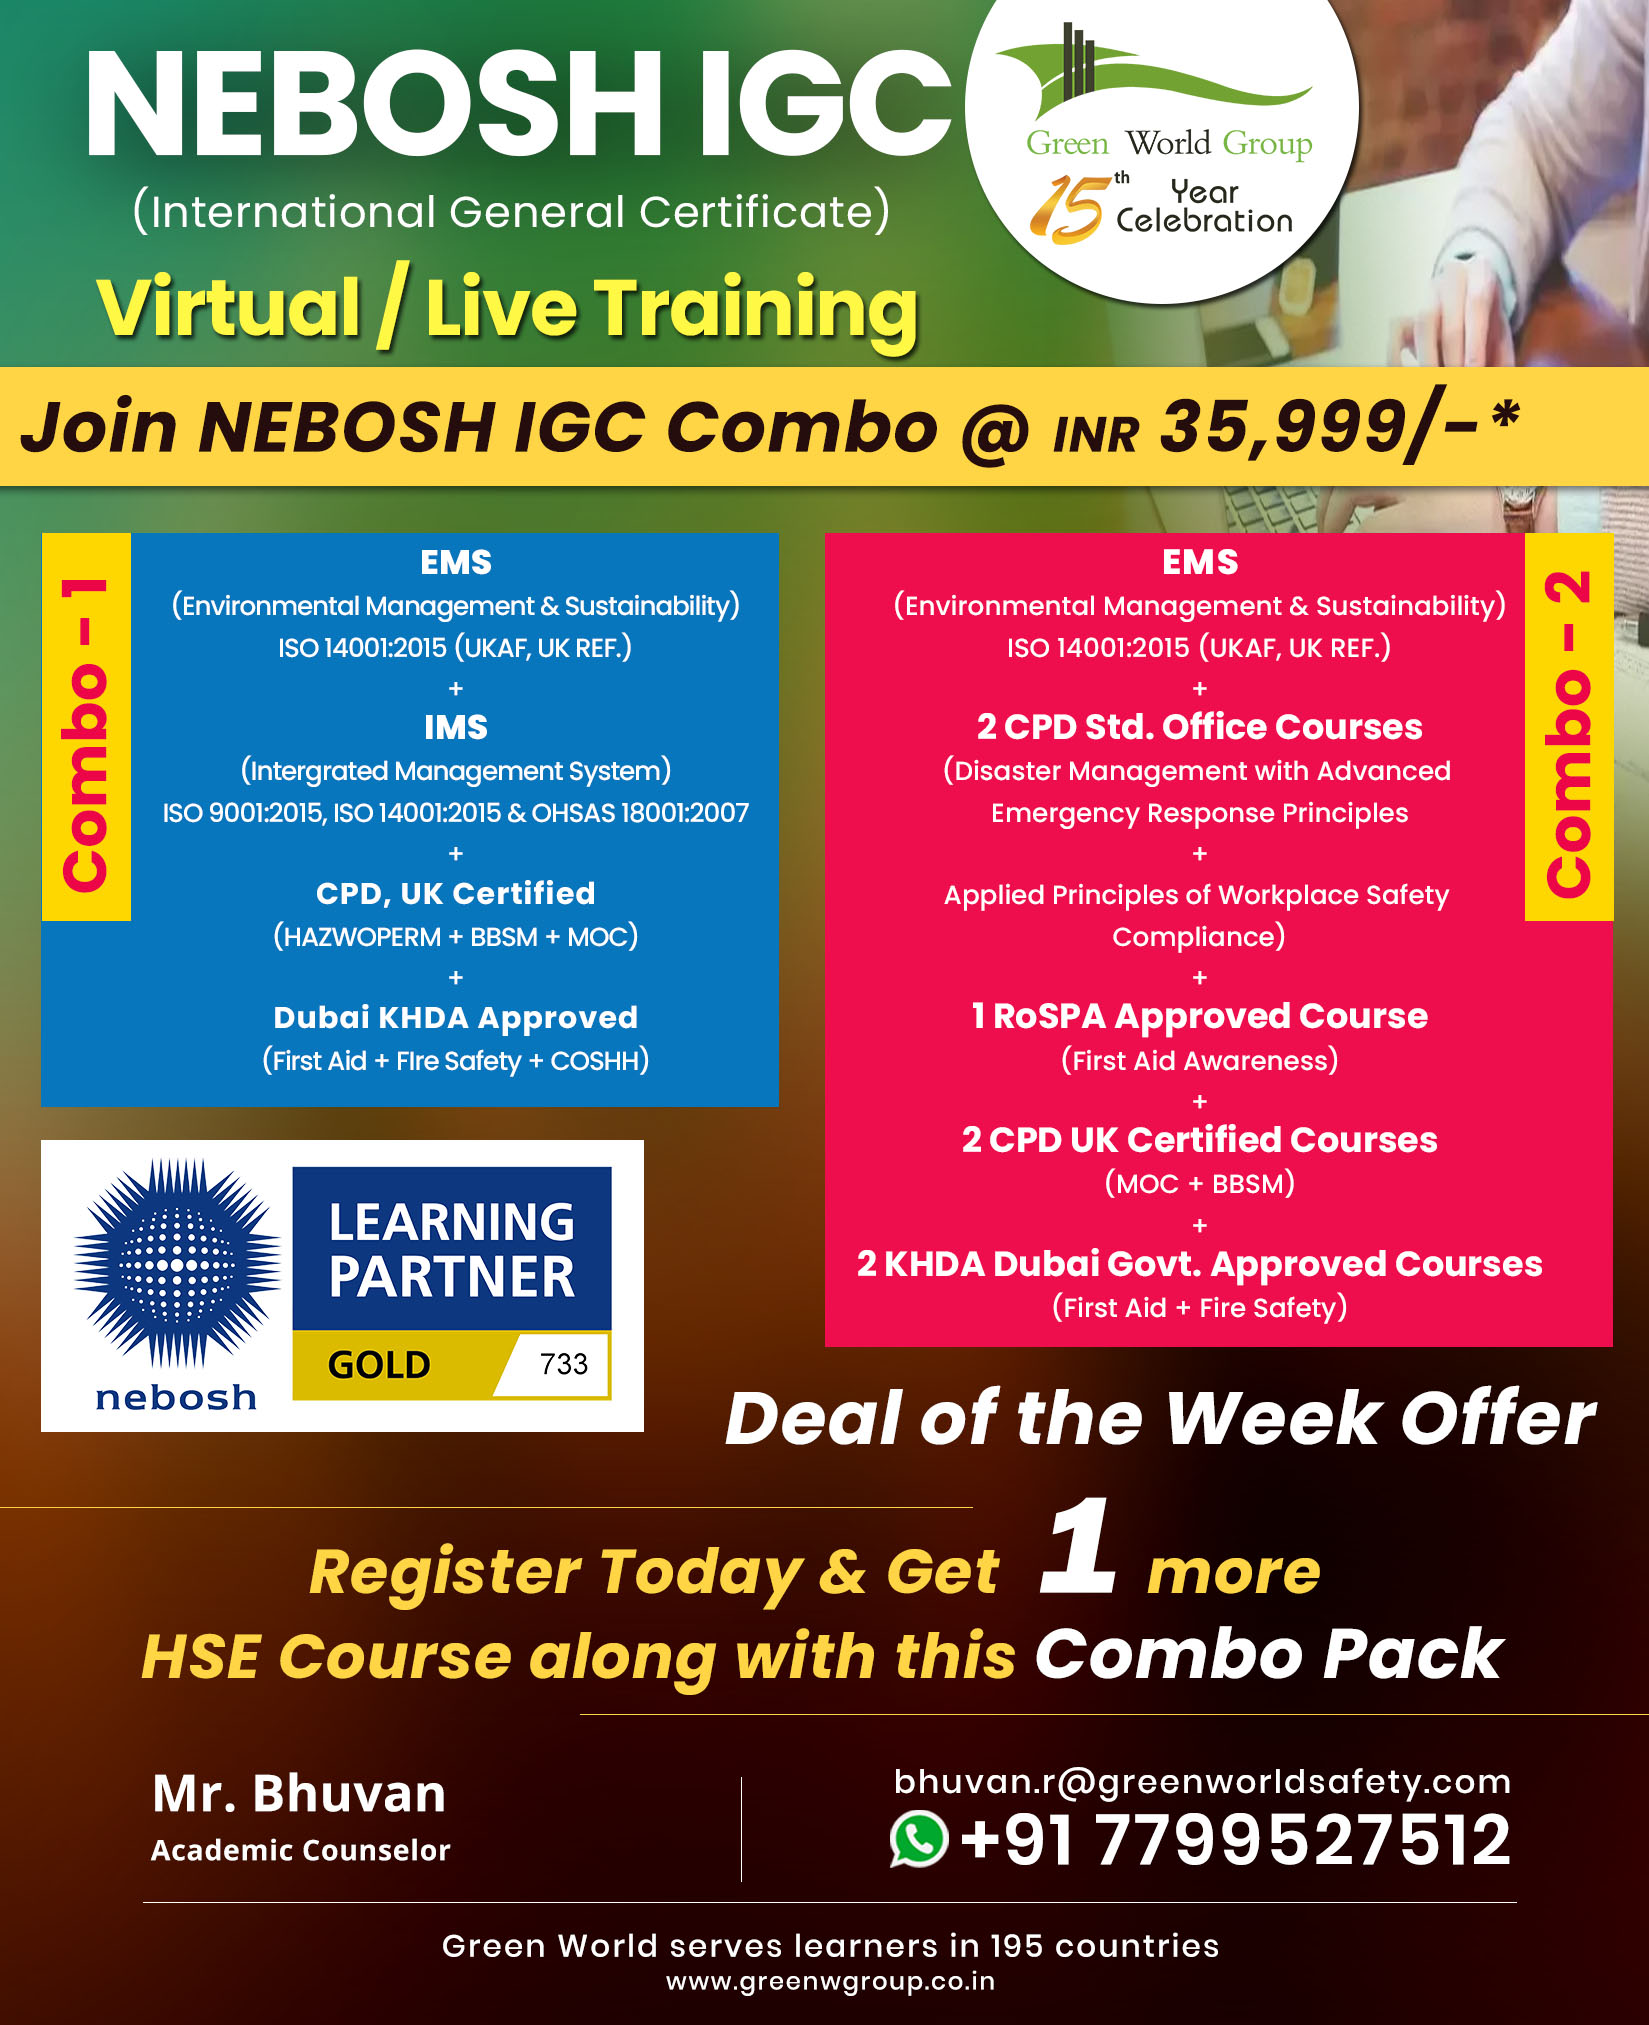 Nebosh_IGC_Offer_India